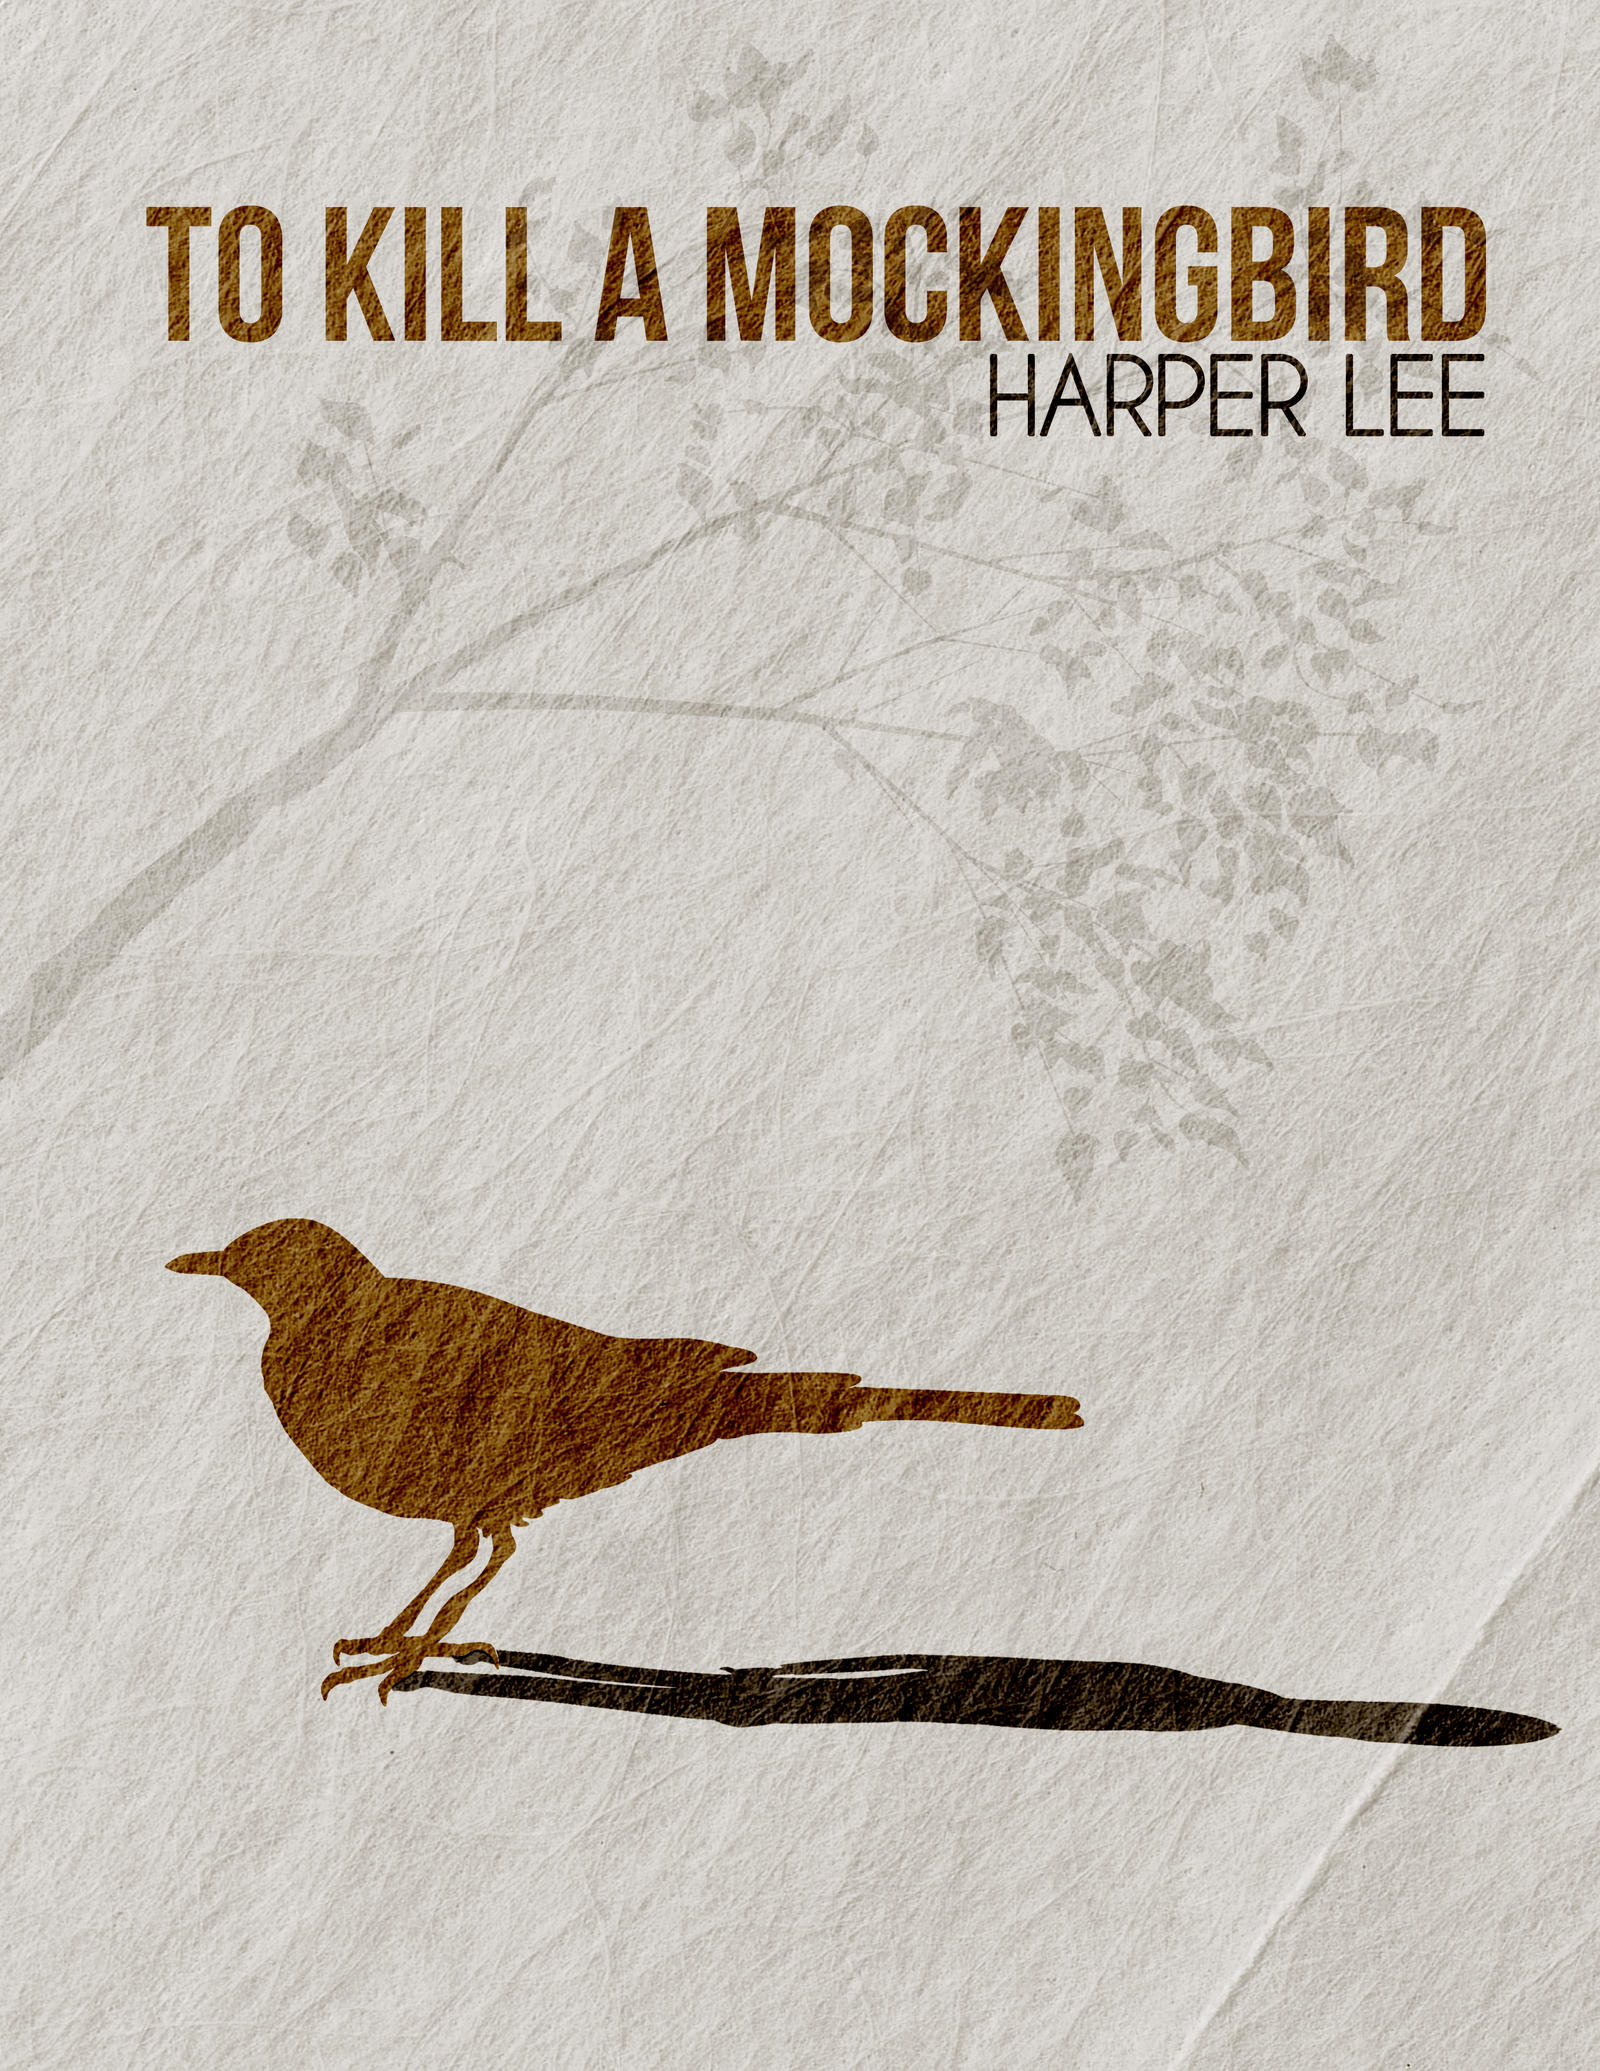 quotations from to kill a mockingbird These are the sources and citations used to research harper lee's to kill a mockingbird - bibliography this bibliography was generated on cite this for me on sunday, october 11, 2015.